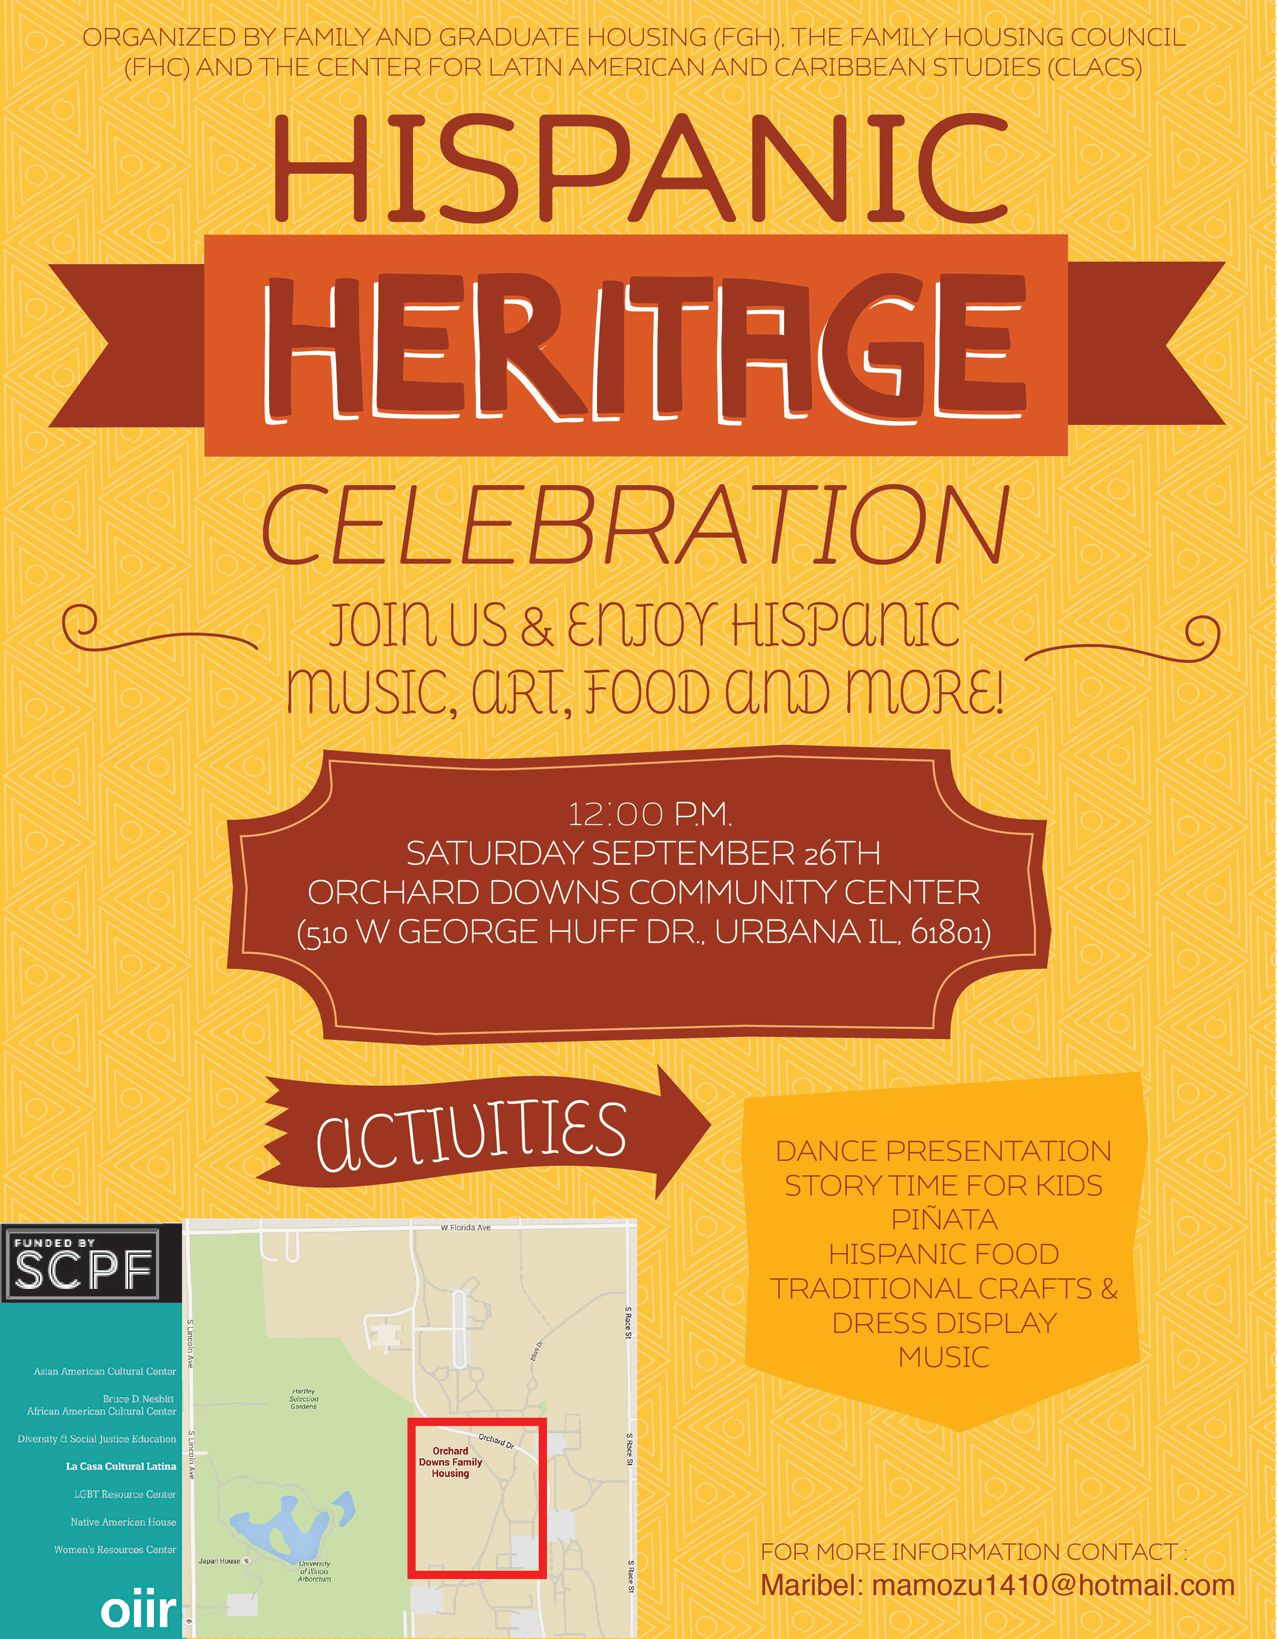 Hispanic Heritage Month Celebration. Saturday, September 26th at 12 pm. Orchard Downs Community Center. 510 W. George Huff Drive, Urbana, IL, 61801. Join us and enjoy Hispanic music, art, food and more! Activities include dance presentation, story time for kids, piñata, hispanic food, traditional crafts and dress display, and music. For more information contact Maribel: mamozu1410@hotmail.com. Organized by Family and Graduate Housing (FGH), The Family Housing Council (FHC), and The Center for Latin American and Caribbean Studies (CLAS). Paid for in part by SCPF.